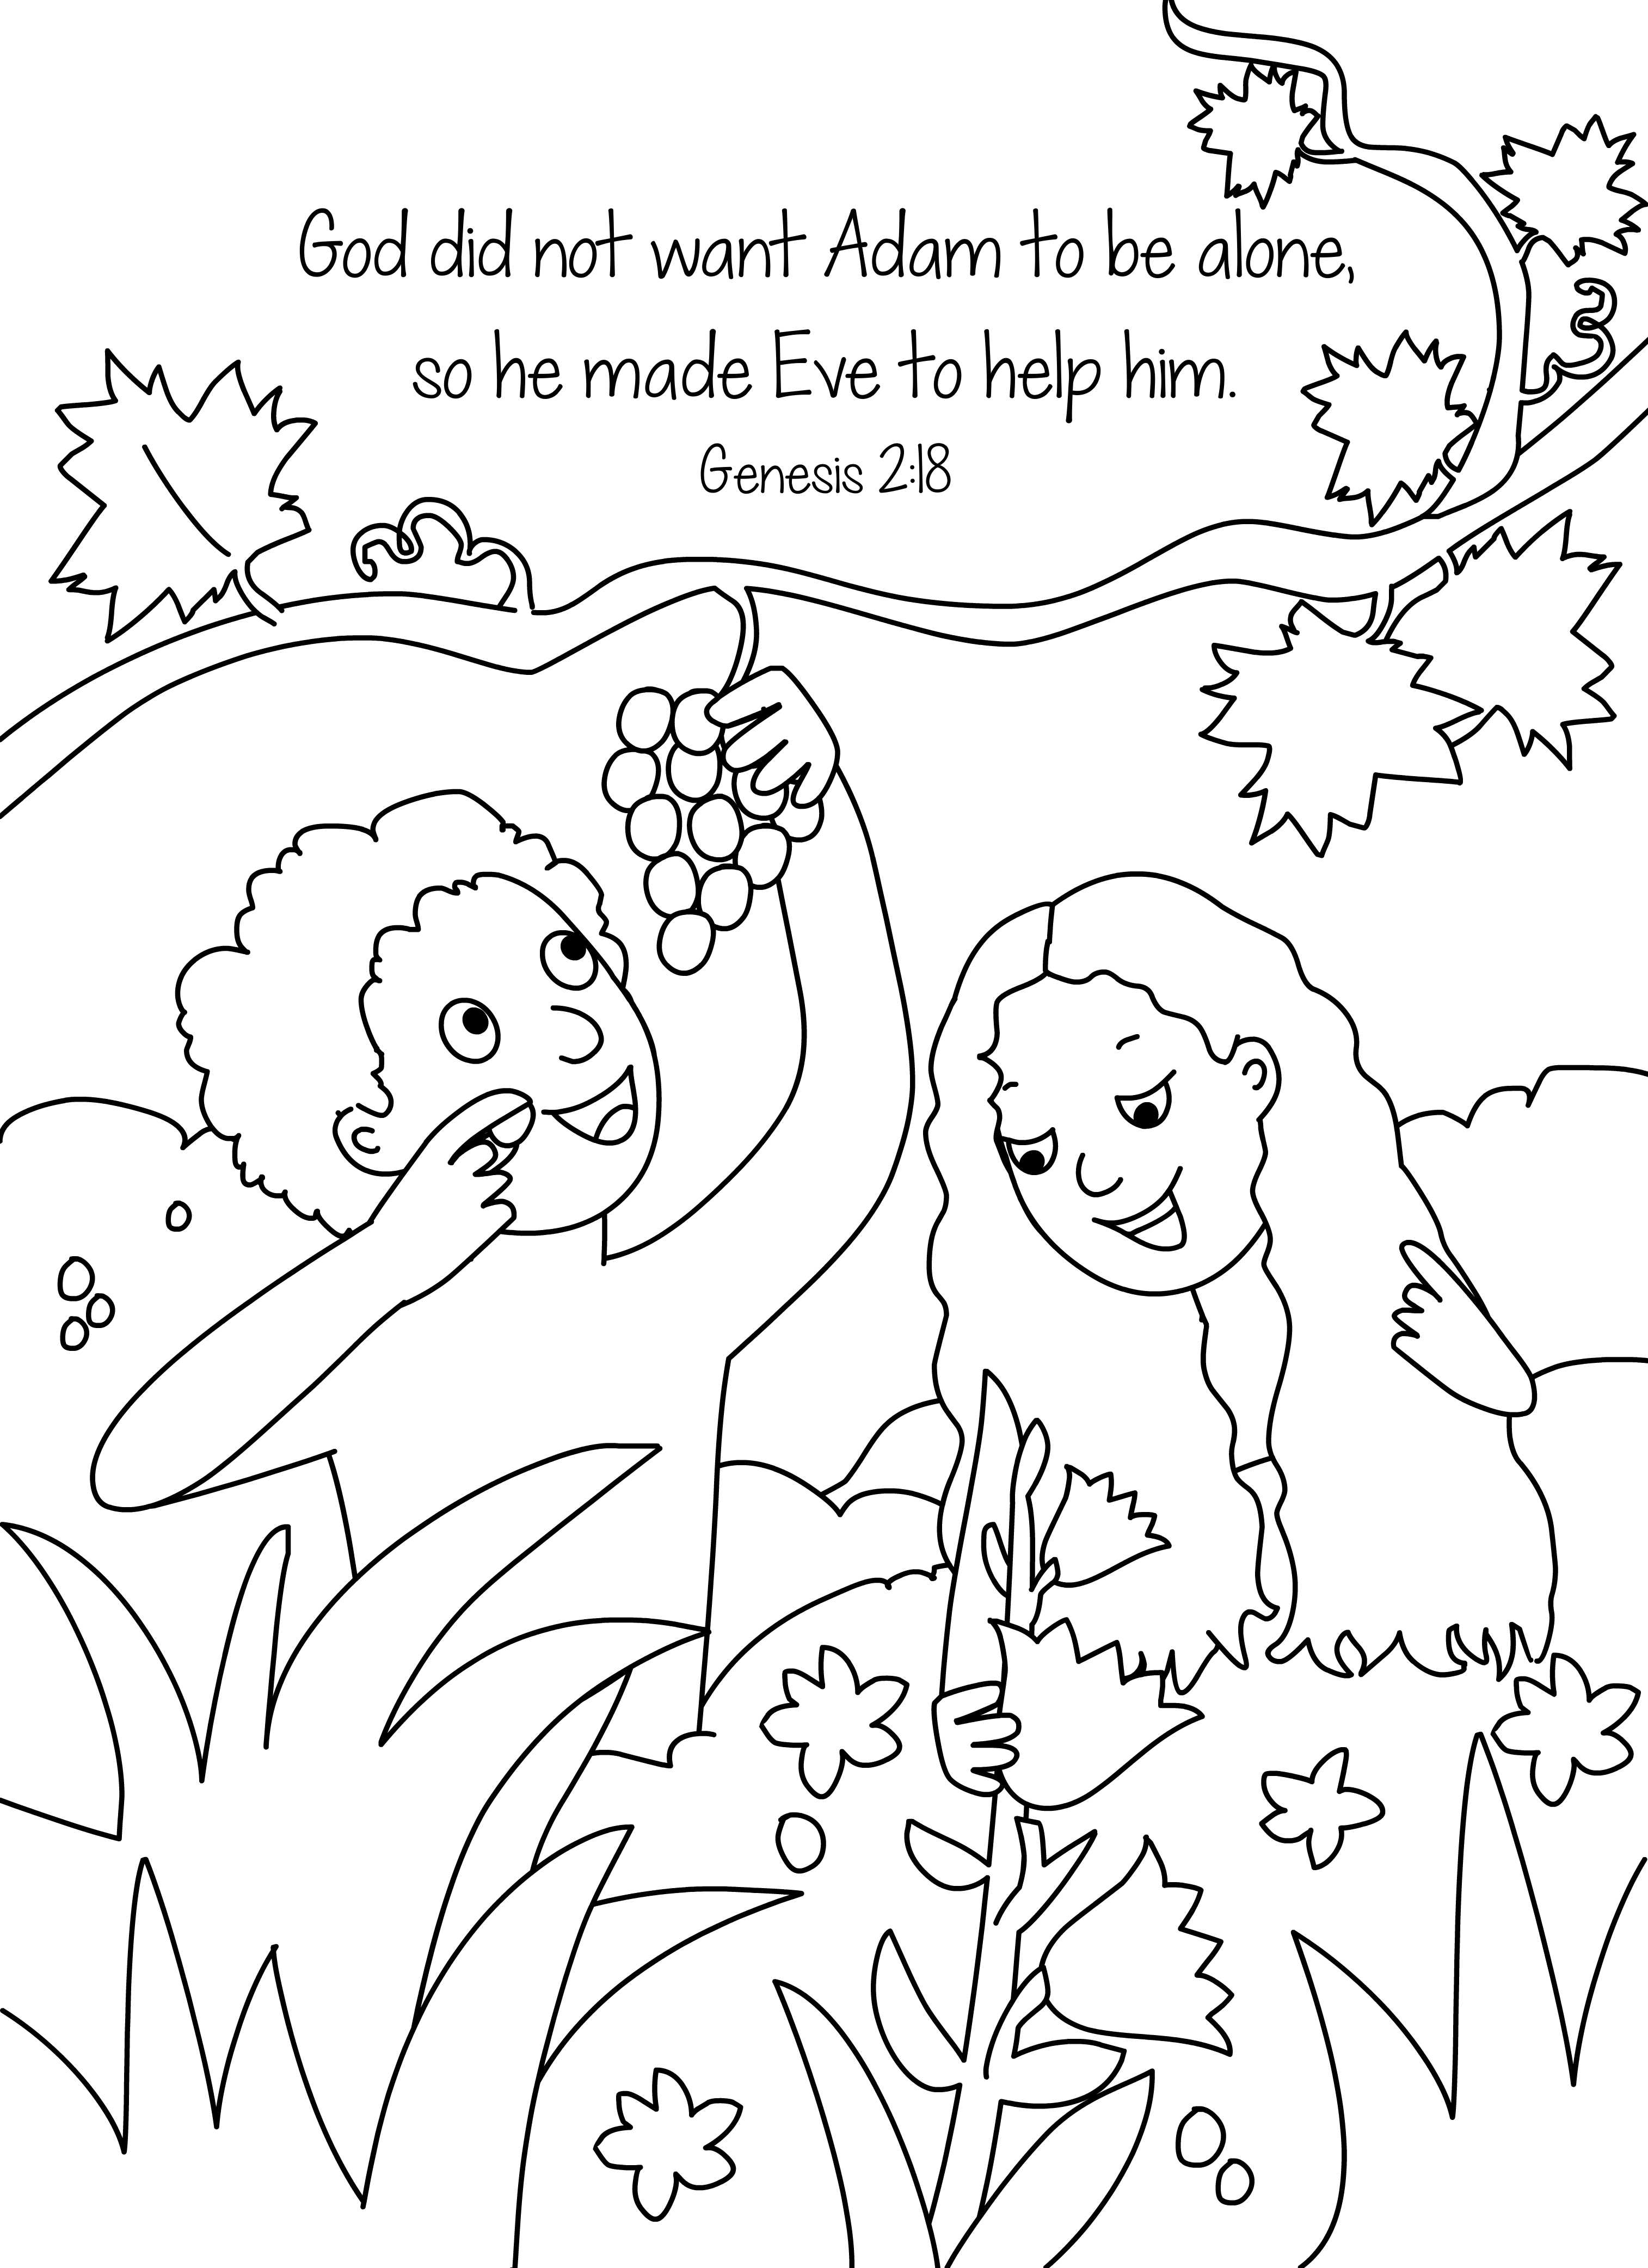 coloring adam and eve story for kids free printable adam and eve coloring pages for kids adam kids eve story coloring and for